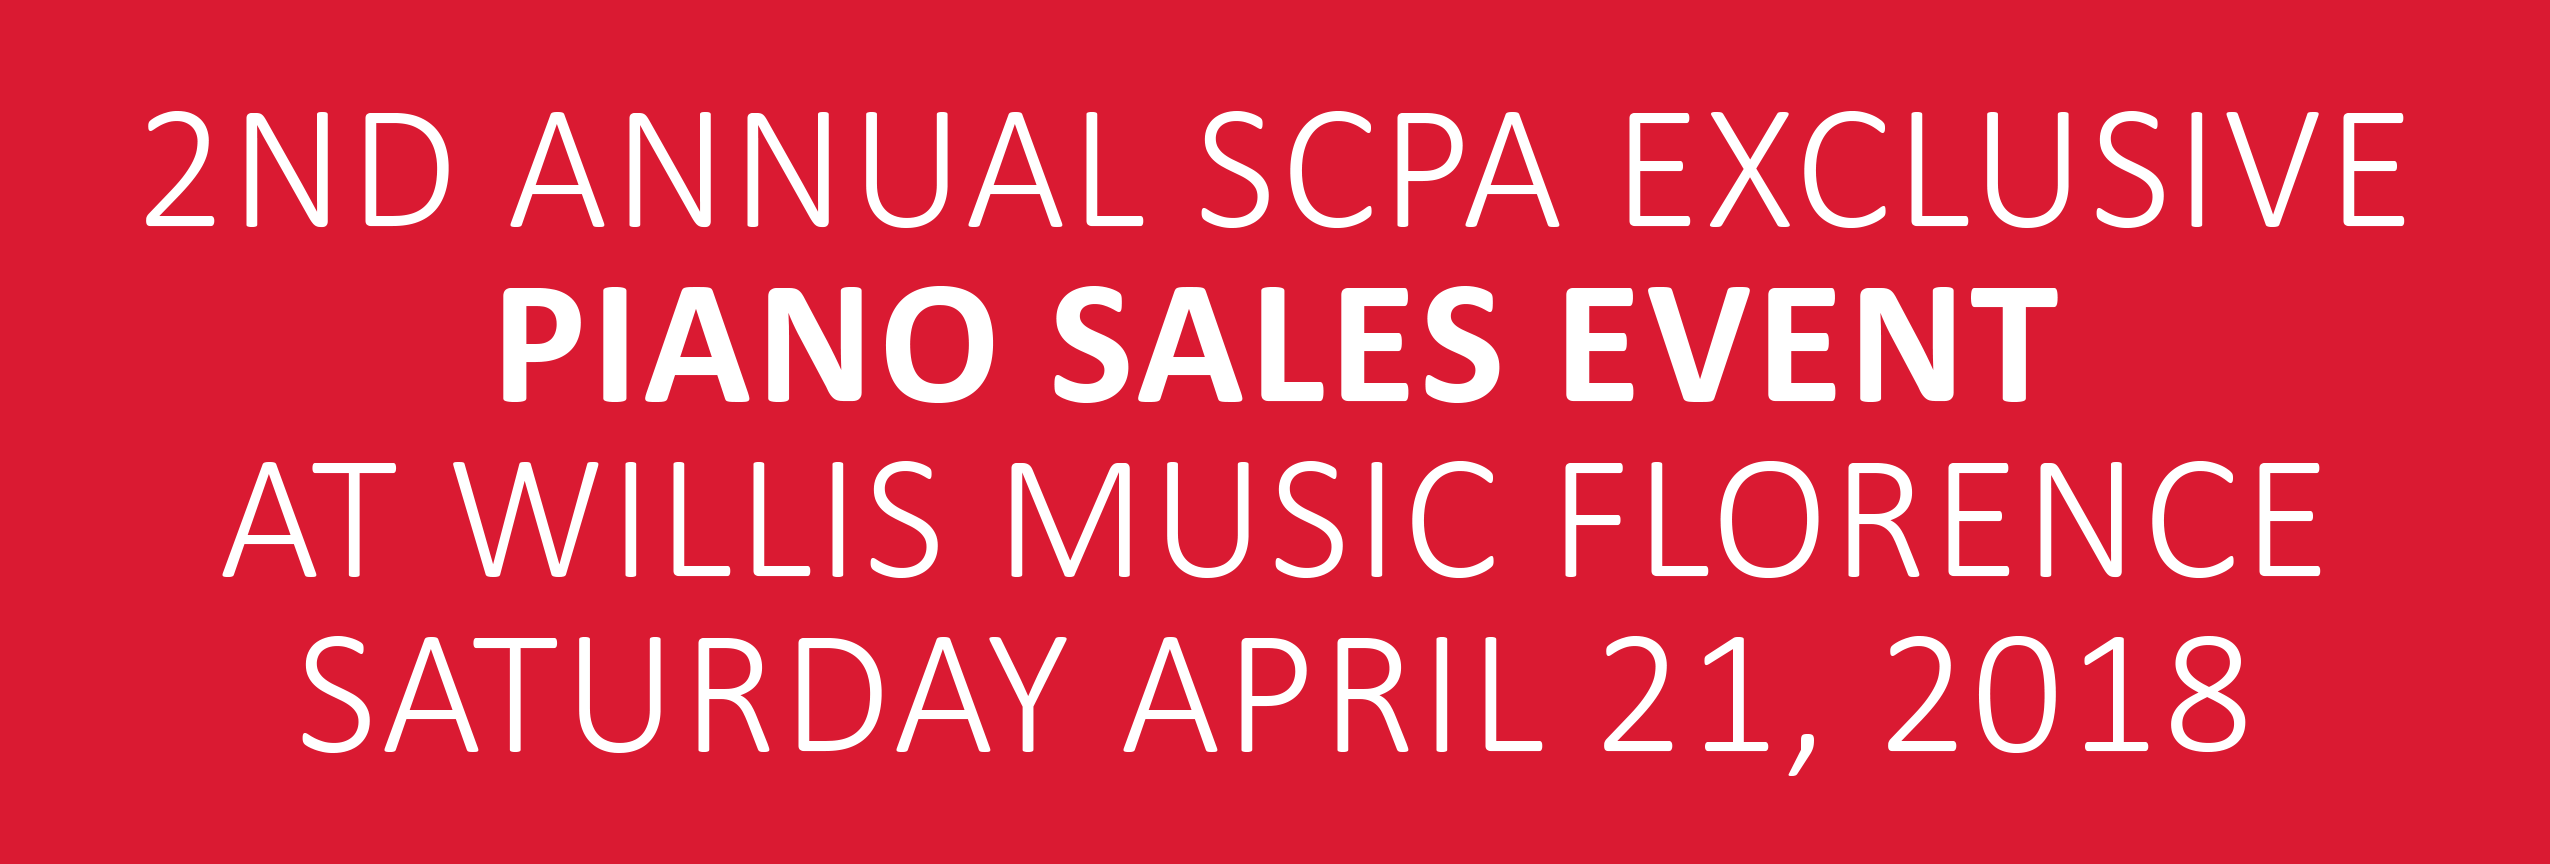 2nd annual SCPA exclusive piano sales event at willis music florence saturday april 21, 2018 banner